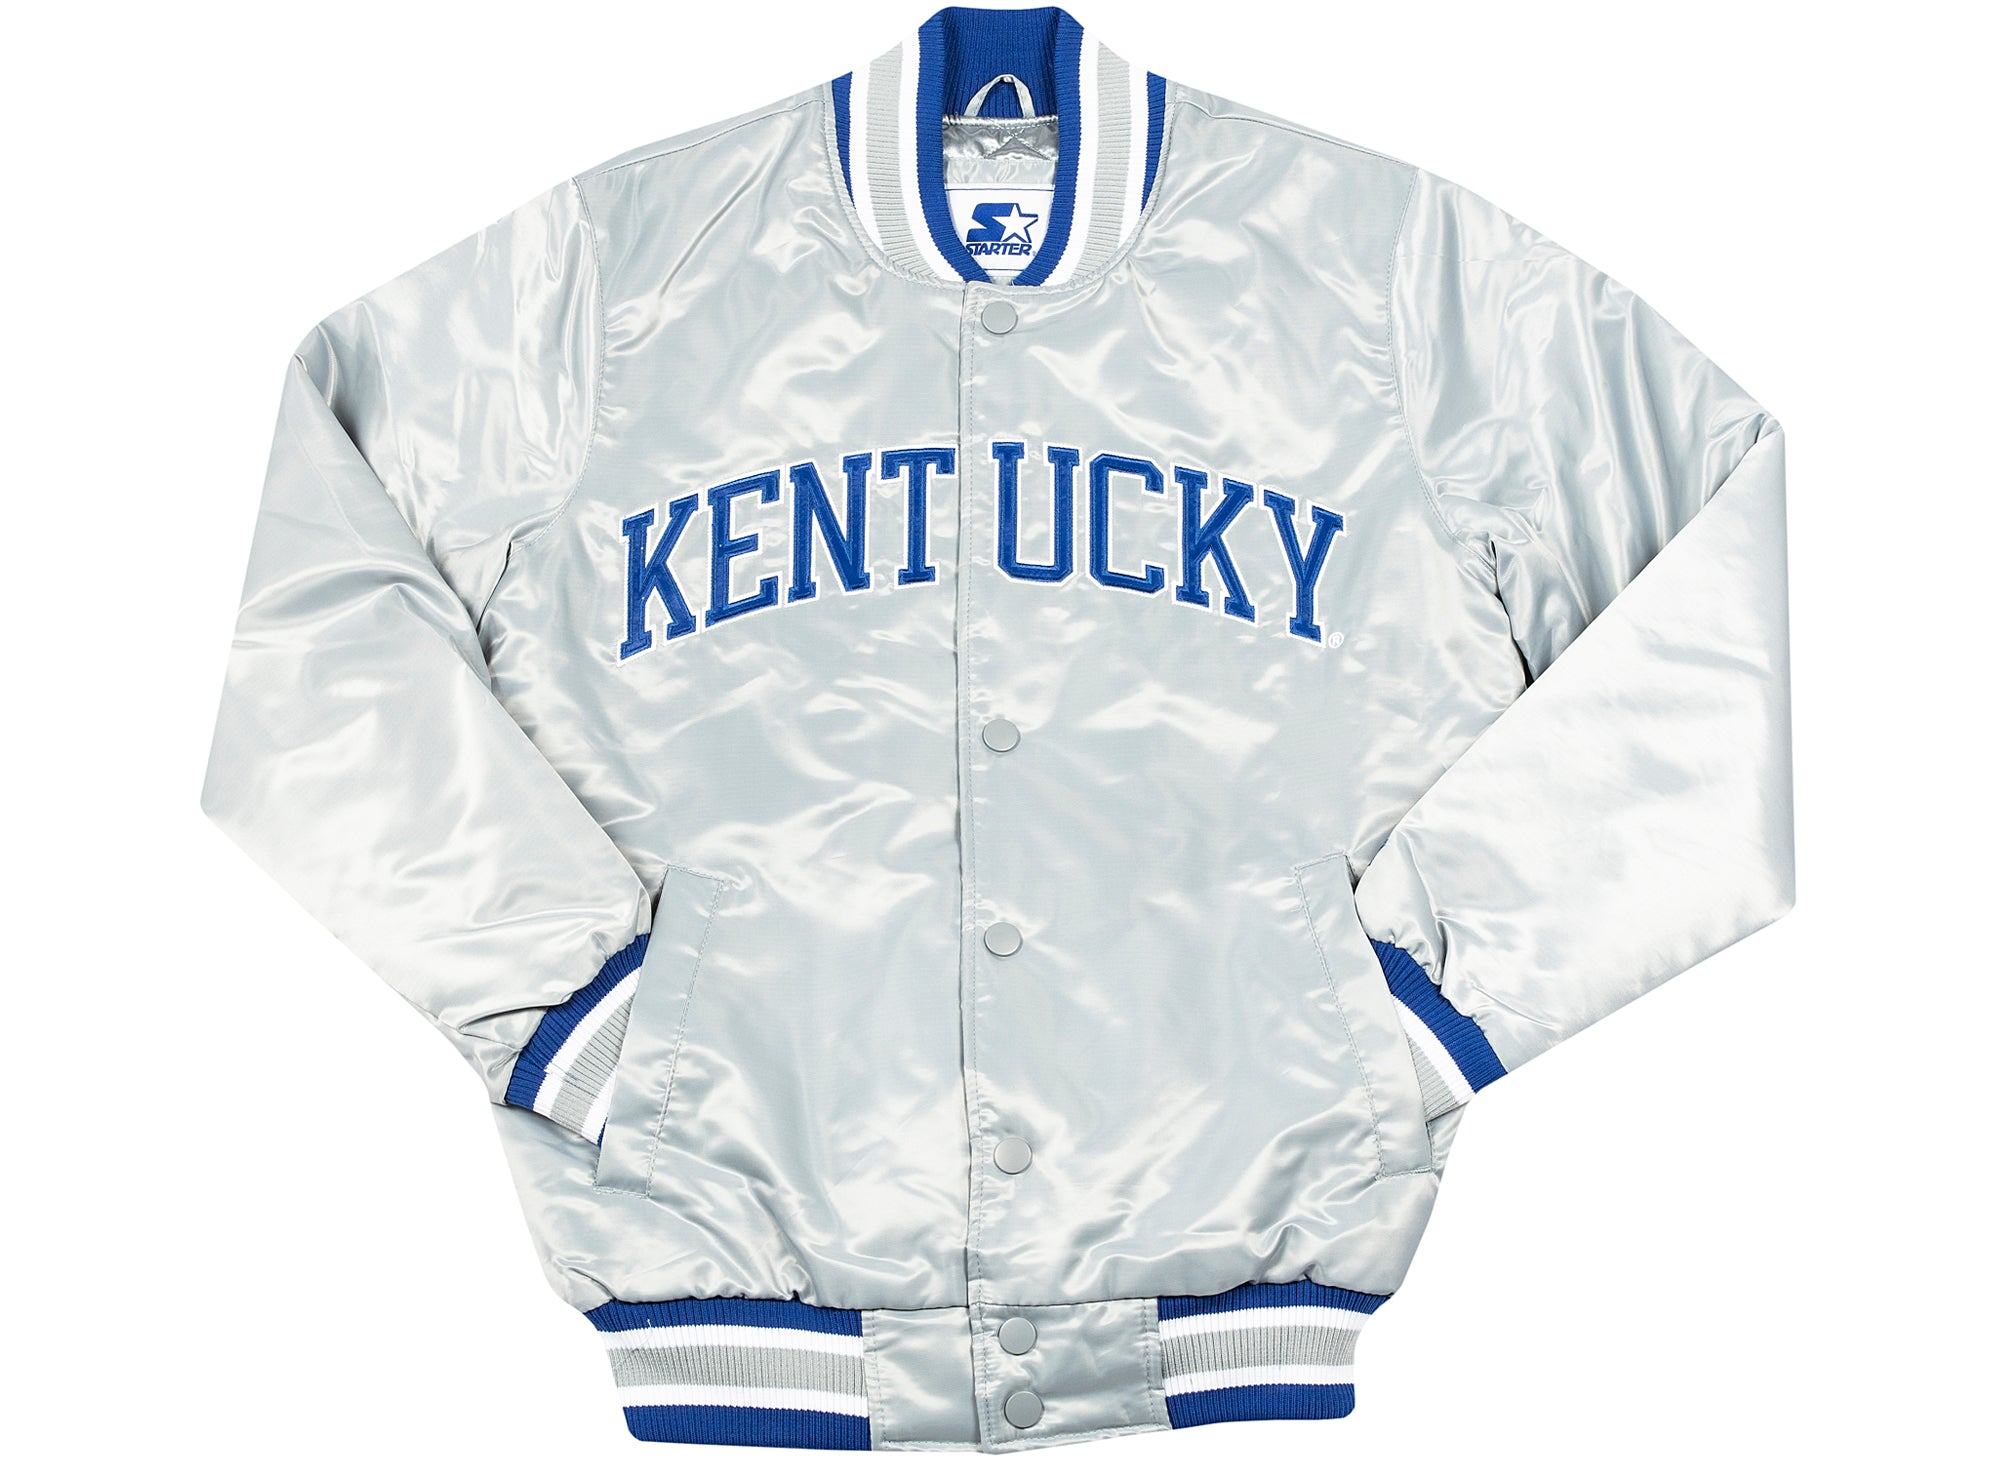 Starter x Oneness Vintage Rivals Pack - University of Kentucky Jacket